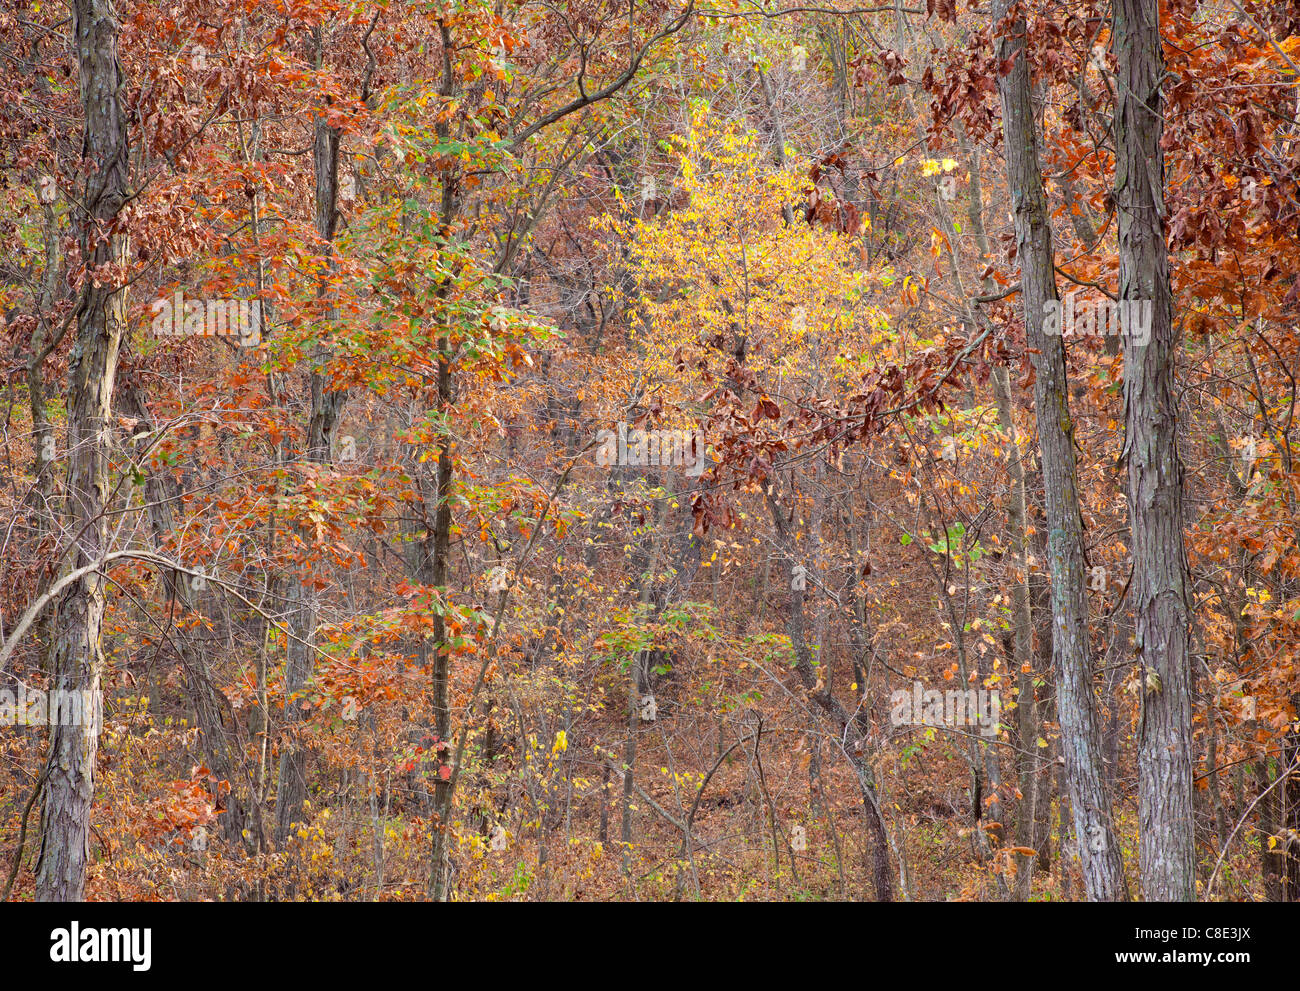 oak-hickory forest in autumn, Stephens State Forest, Woodburn Unit, Clarke County, Iowa - Stock Image